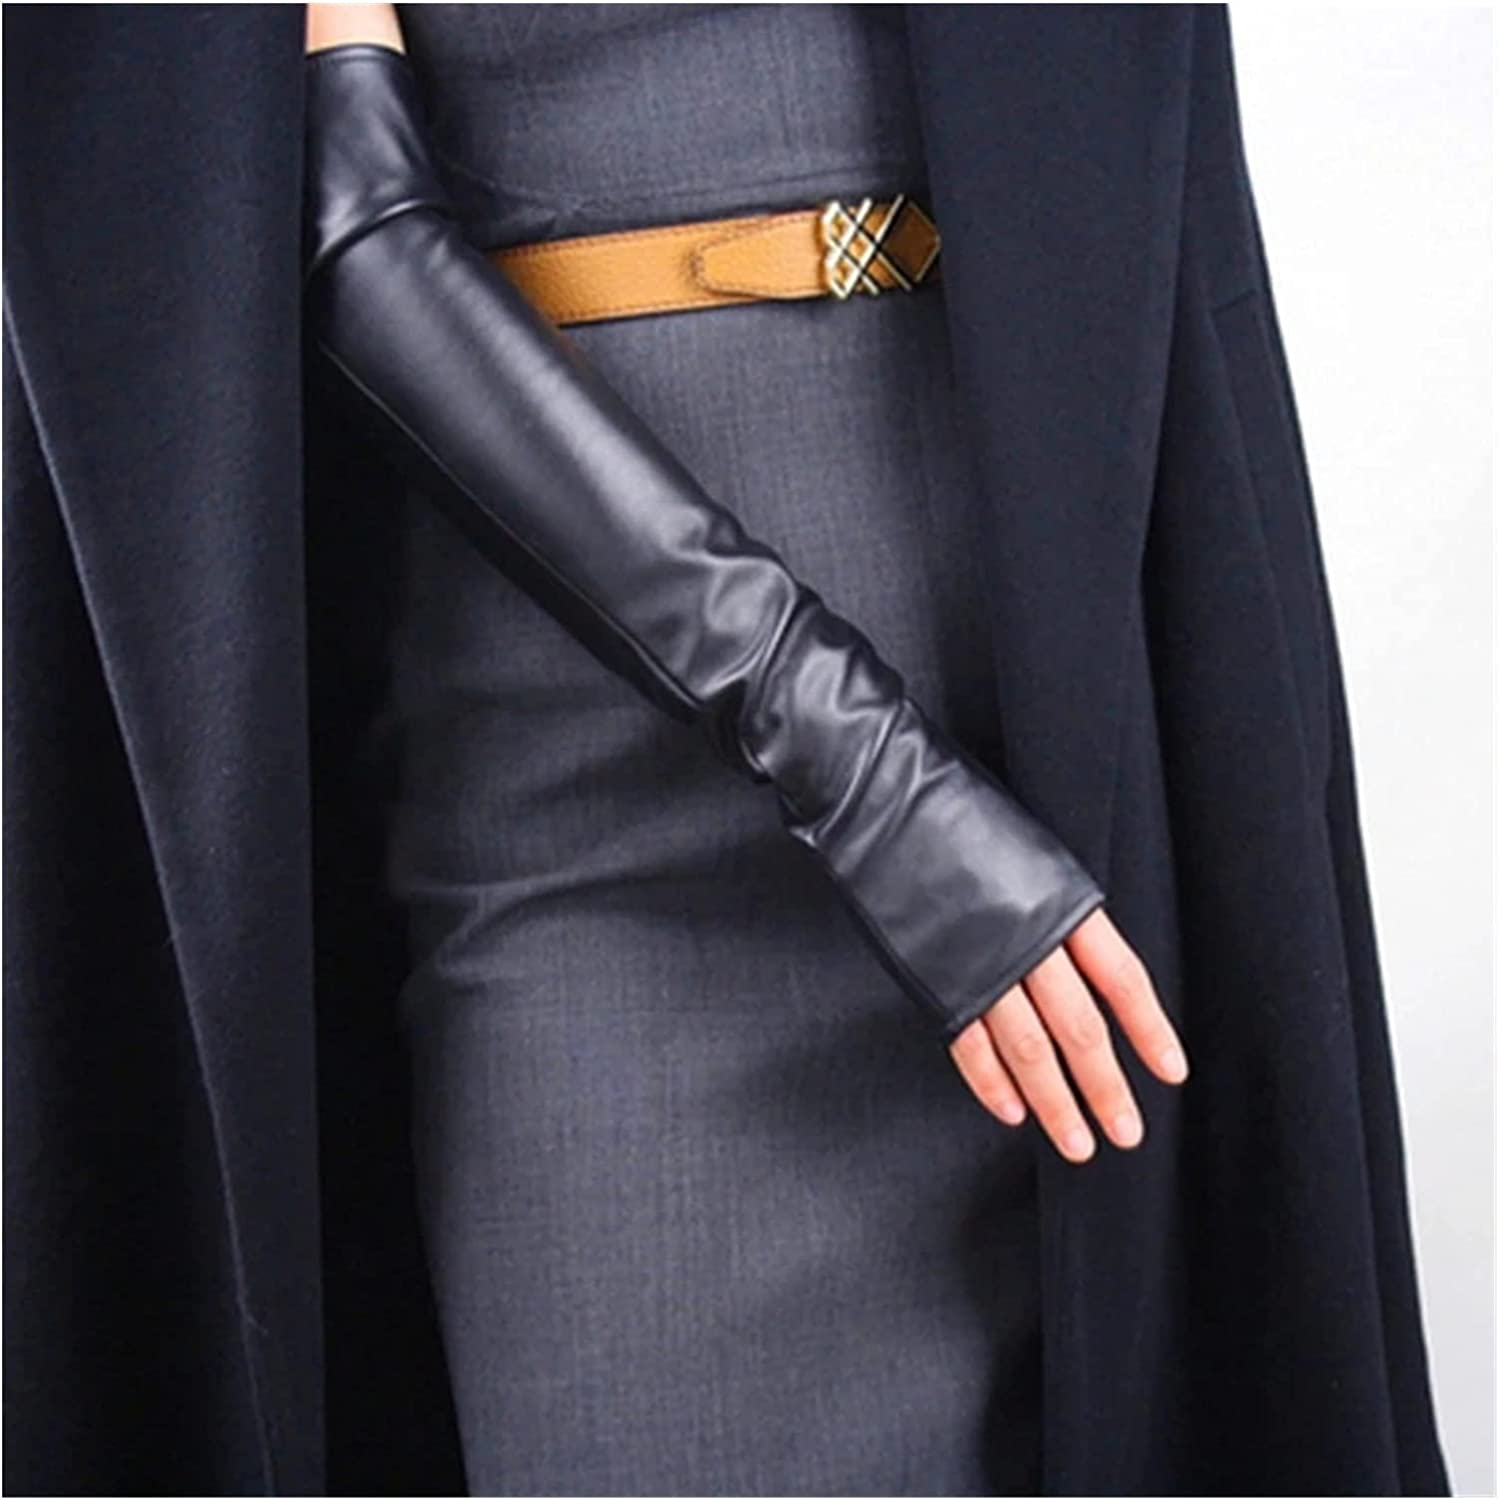 CHHNGPON Bridal Gloves Women Winter Warm Half Finger Arm Sleeve Nightclub Show Touch Screen Mitten Thin Long Fingerless Pu Leather Driving Gloves (Color : Black 50cm, Gloves Size : One Size)